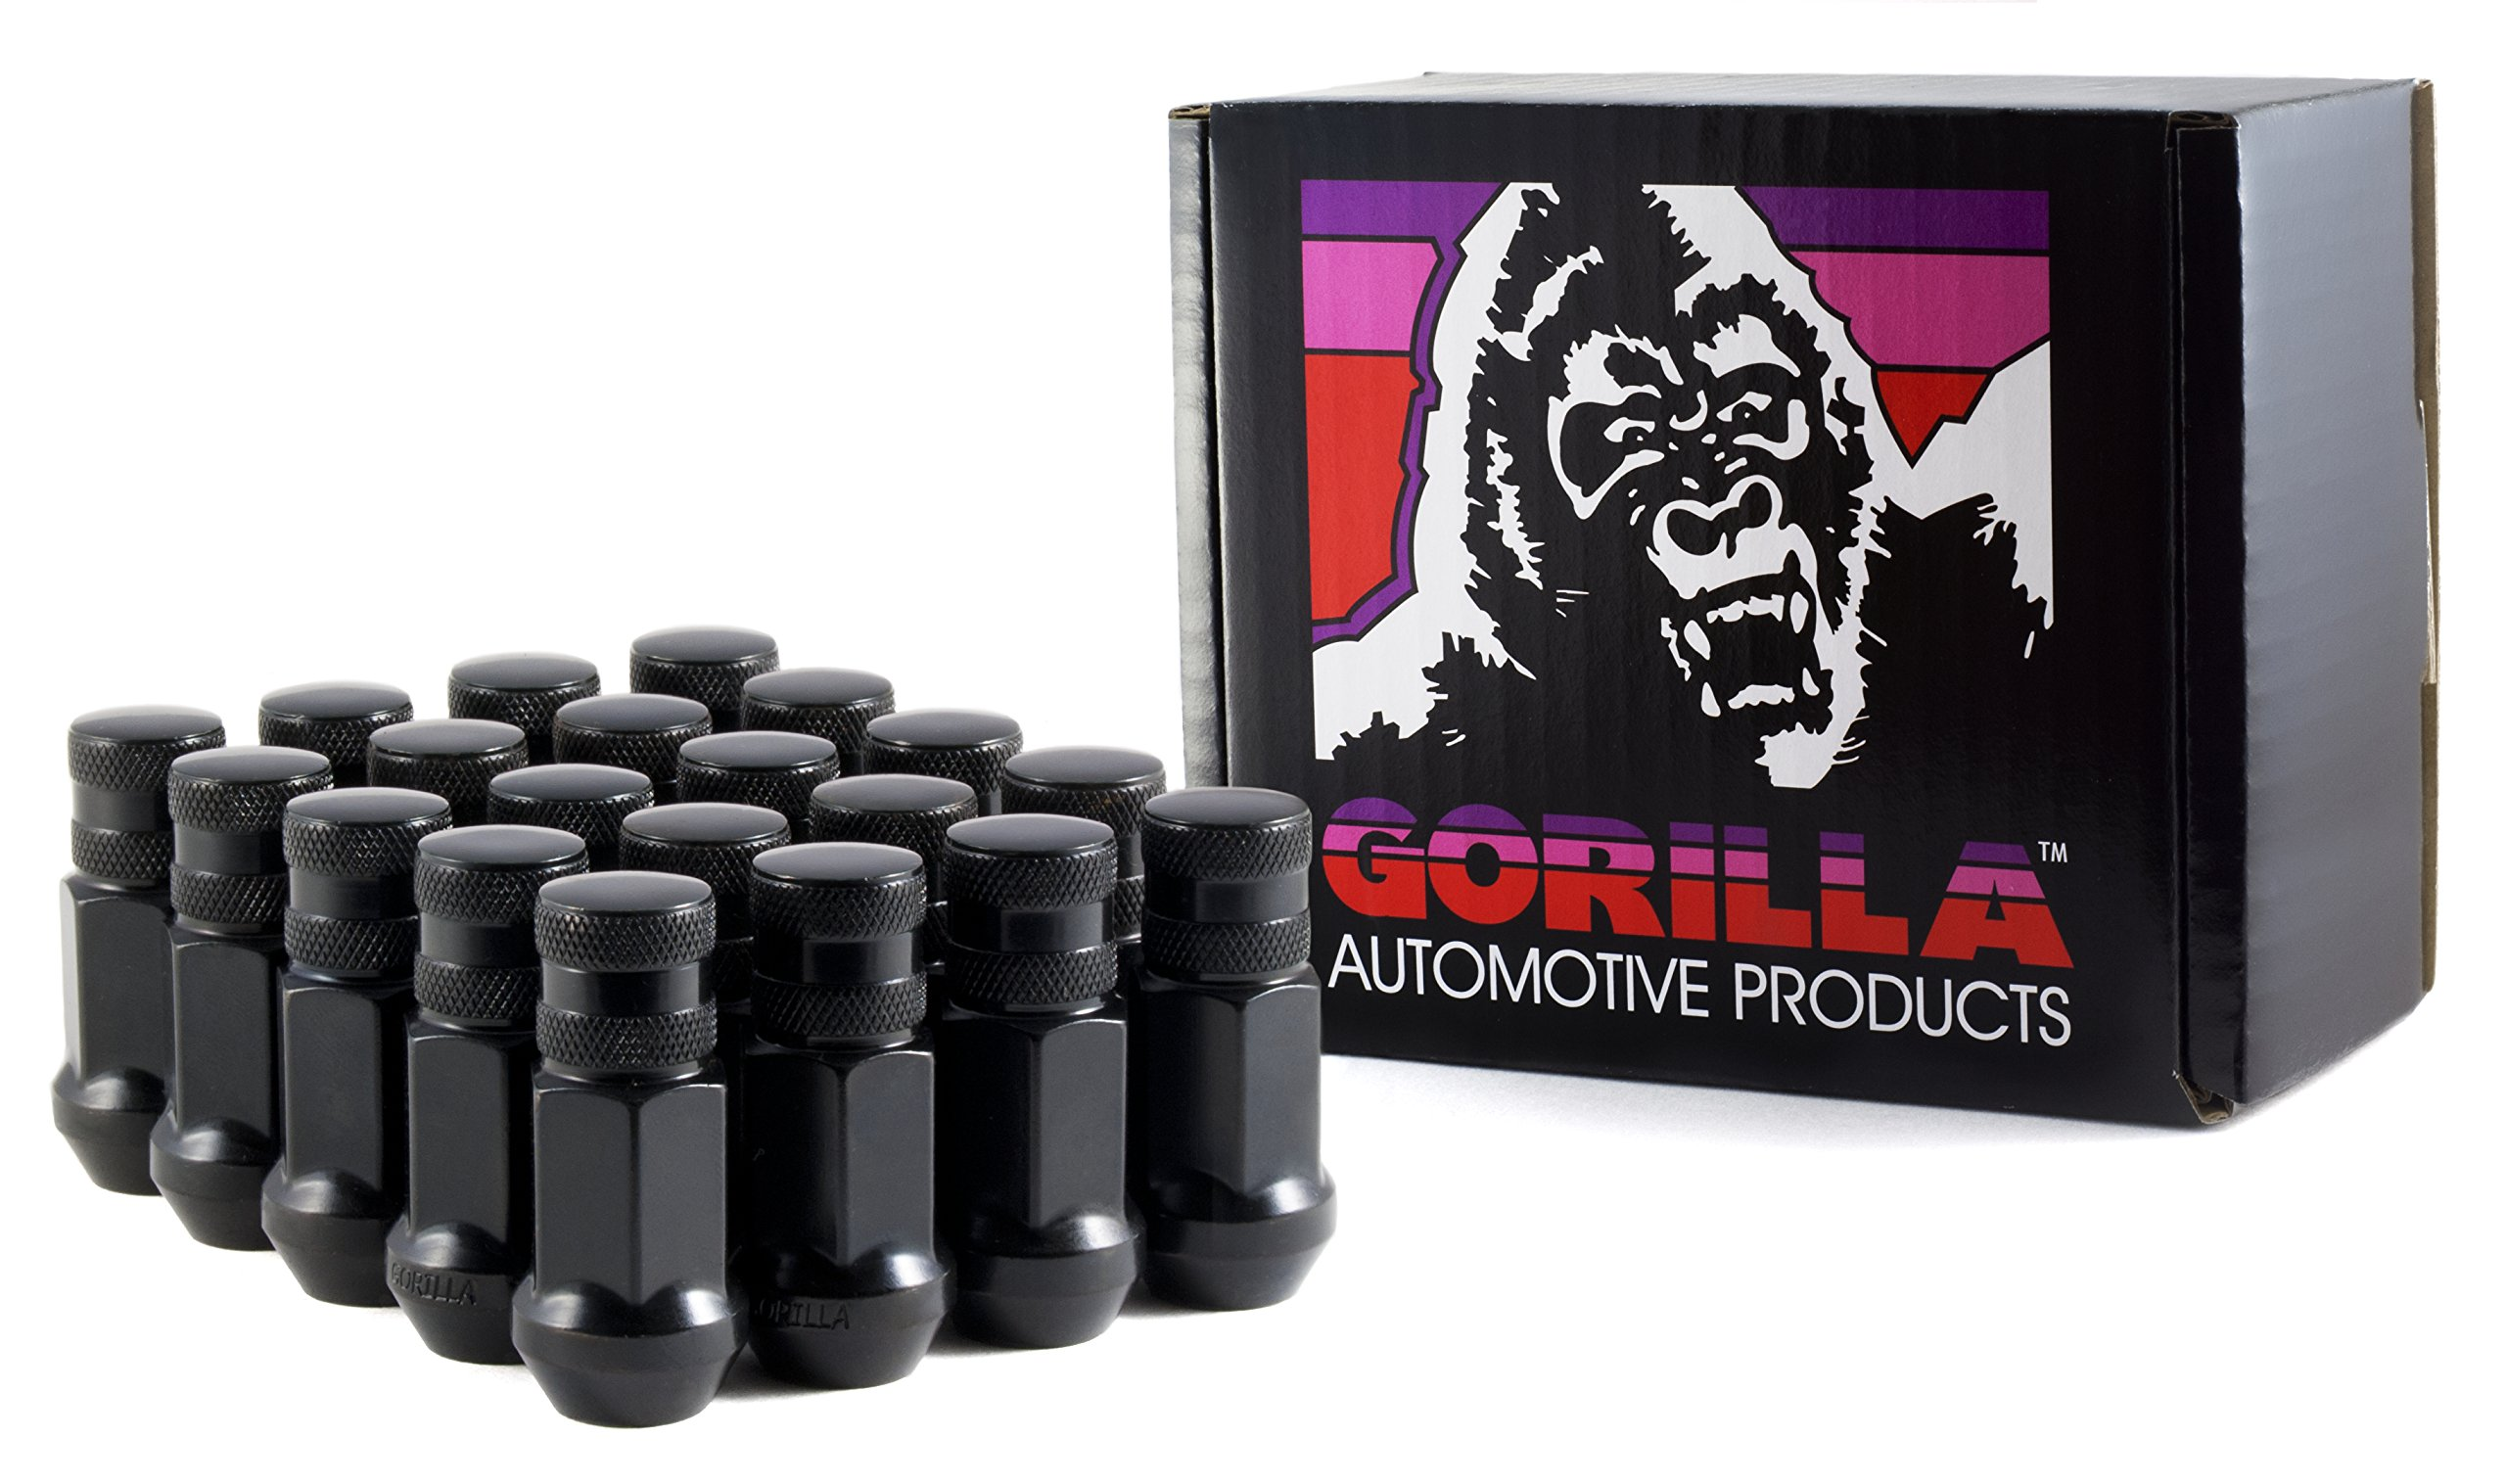 Gorilla Automotive 45138BC-20 Black 12mm x 1.50 Thread Size Forged Steel Chrome Finish Closed End Lug Nut, (Pack of 20)